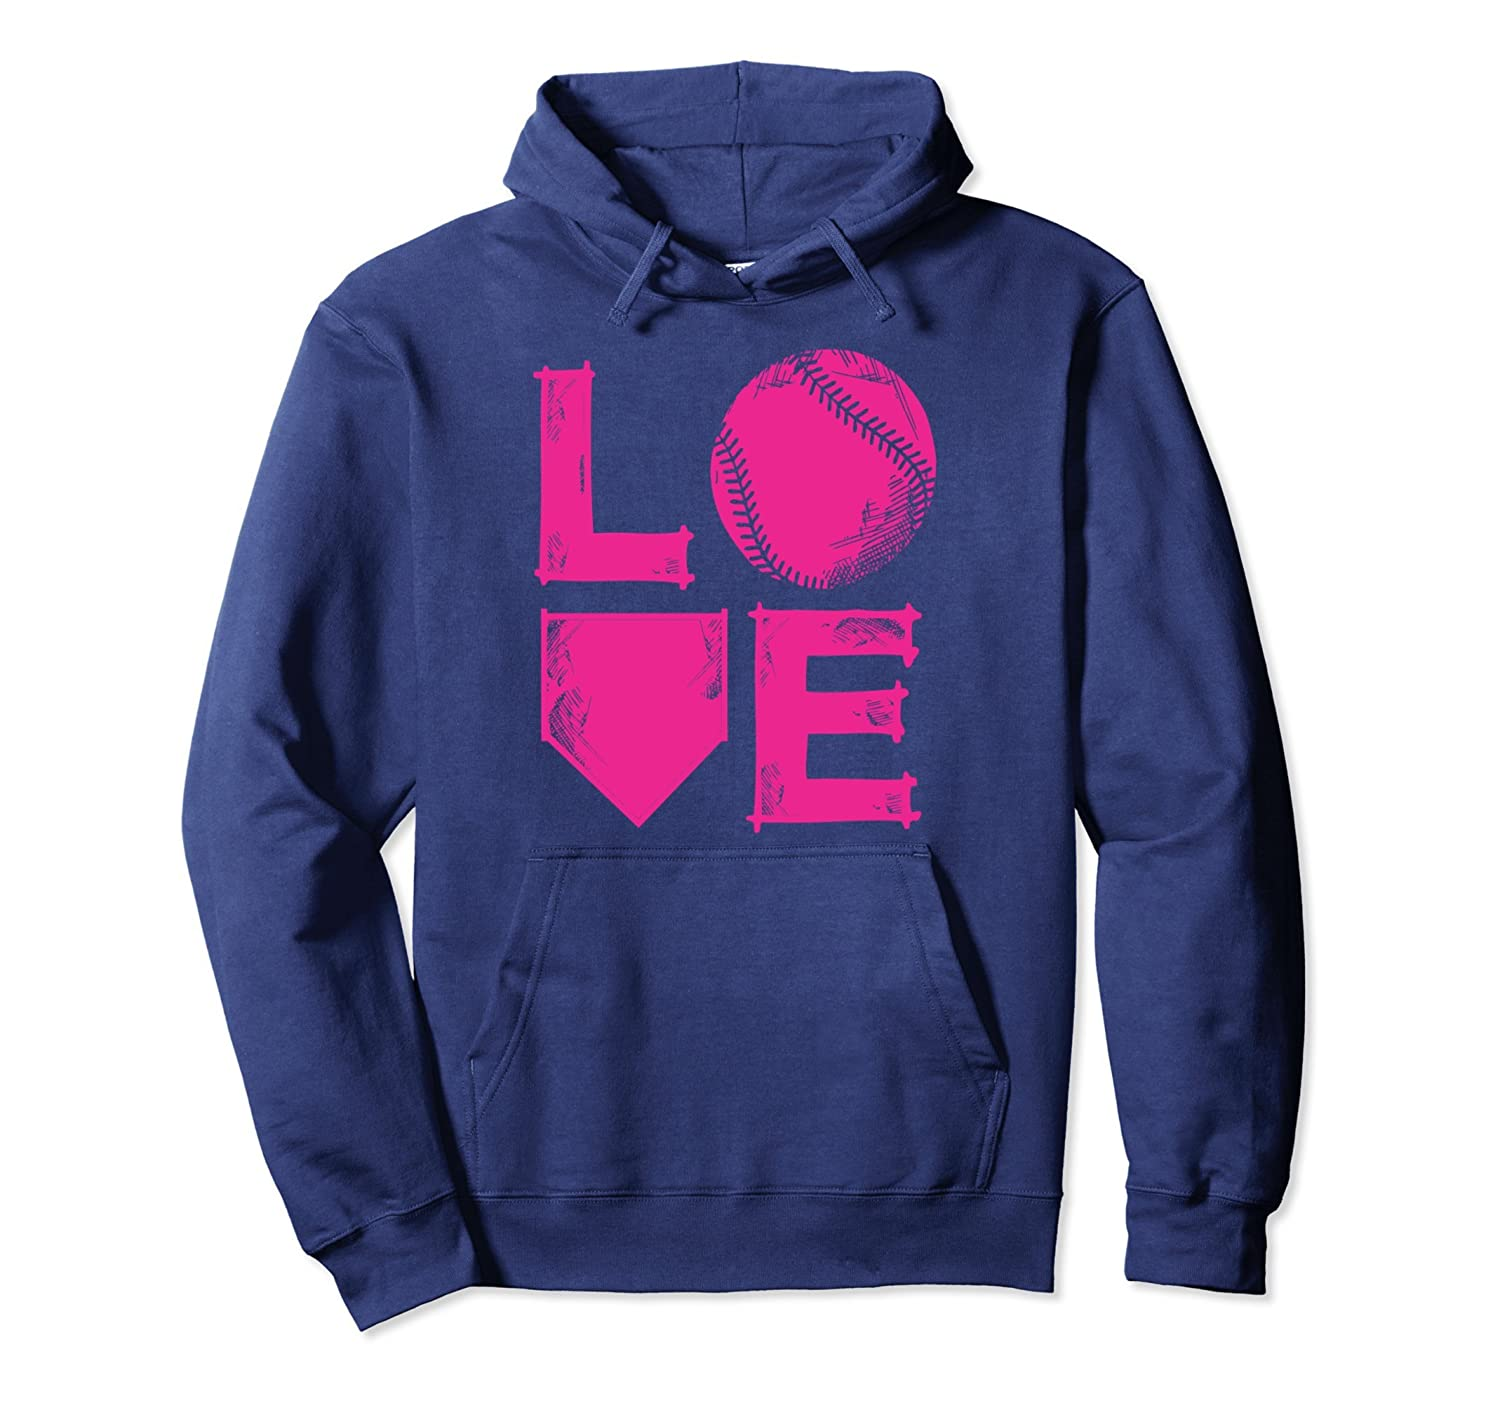 American Softball Apparel Gift I Love Softball Hoodie Gift Idea For Teen  Girls and Women-Colonhue